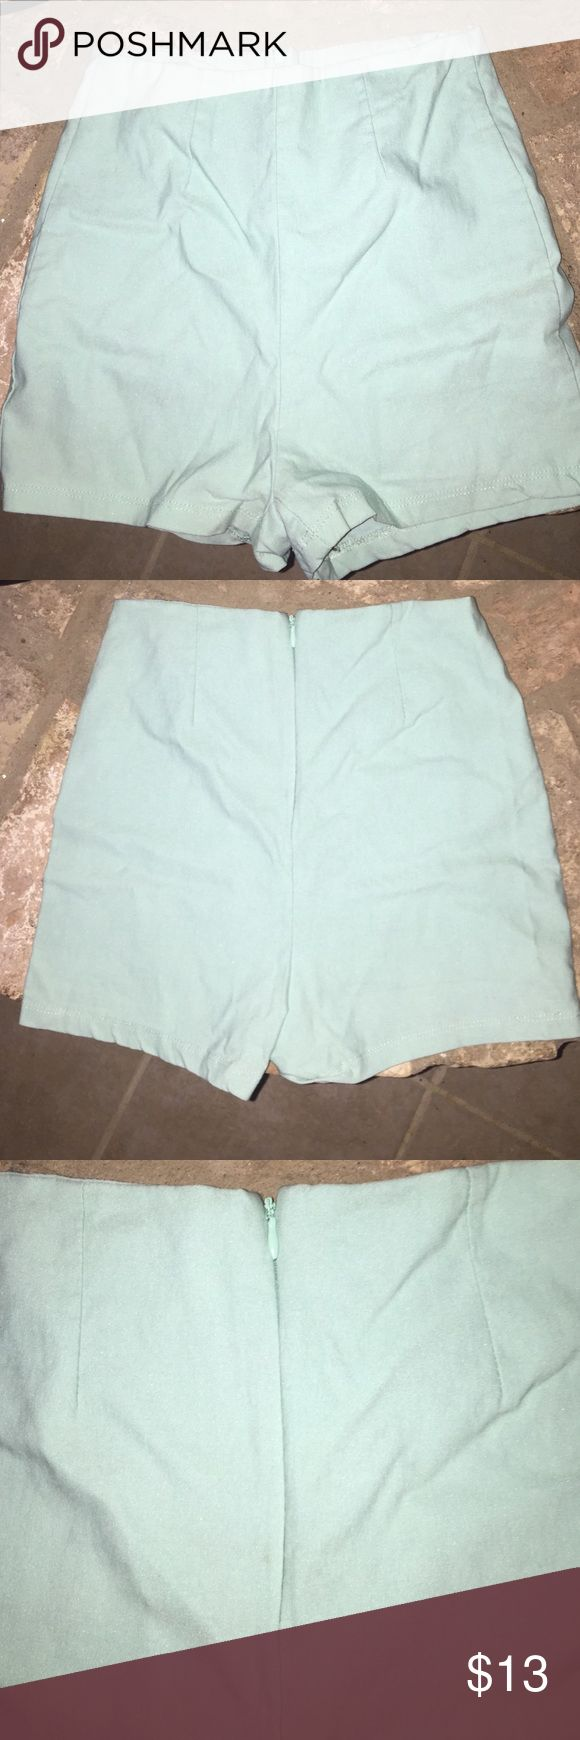 Kirra size M high waisted mint shorts Kirra (pacsun) size Medium fit like a small stretchy very high waisted mint shorts. Zipper back Kirra Shorts